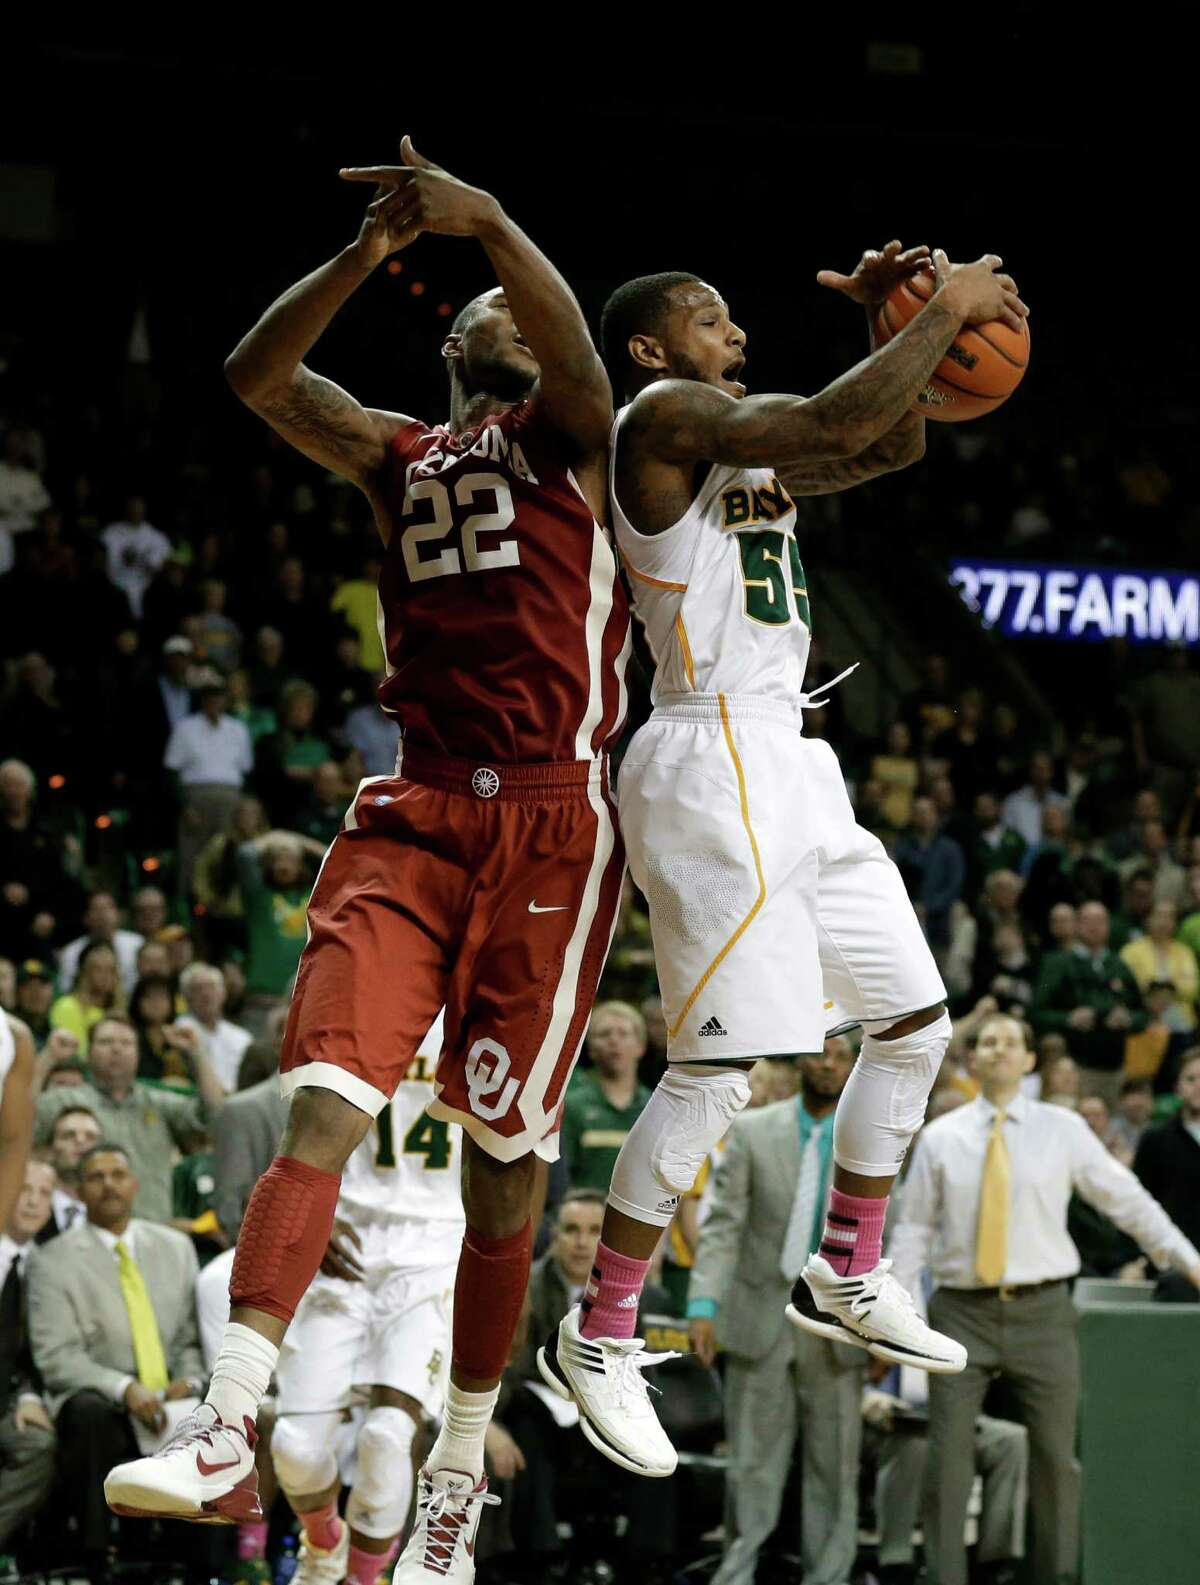 Baylor 's Pierre Jackson, right, comes down with a rebound in front of Oklahoma 's Amath M'Baye (22) late in the second half of an NCAA college basketball game Wednesday, Jan. 30, 2013, in Waco, Texas. Jackson lead all scoring with 22-points in the 74-71 loss to Oklahoma. (AP Photo/Tony Gutierrez)